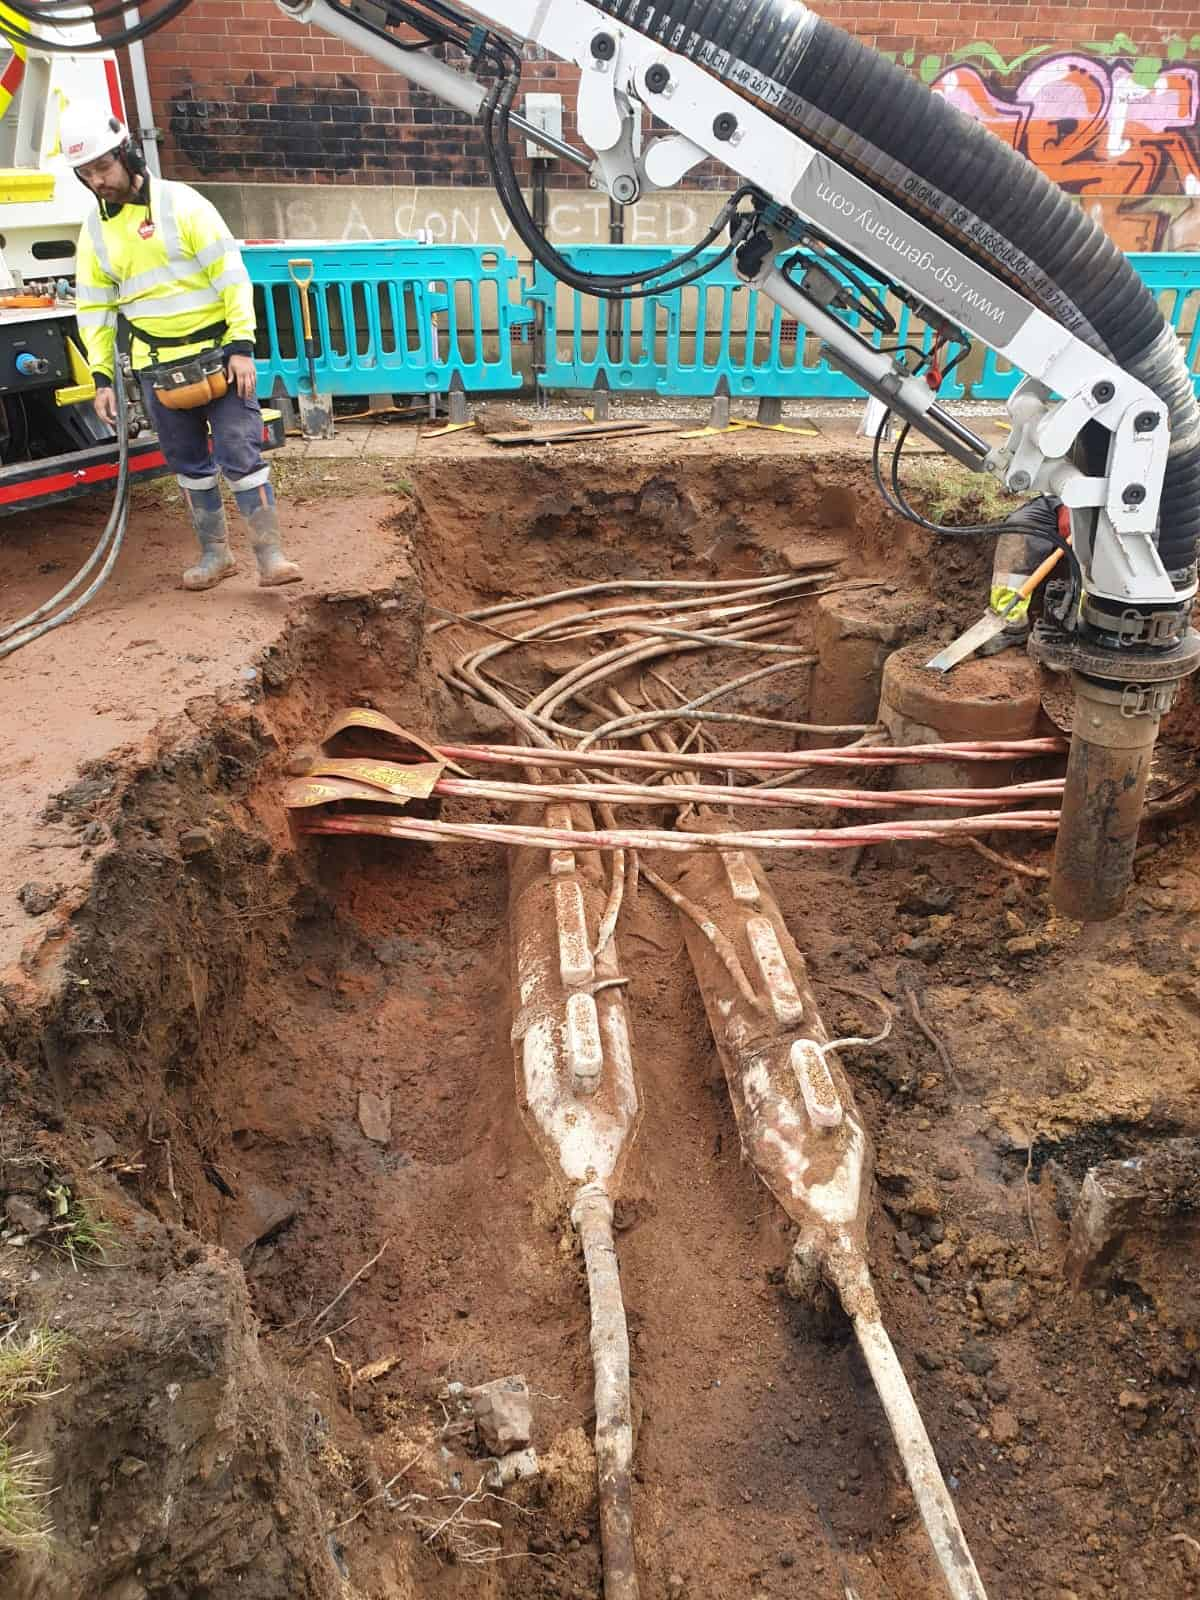 Vac UK digging around large power cables with vac ex